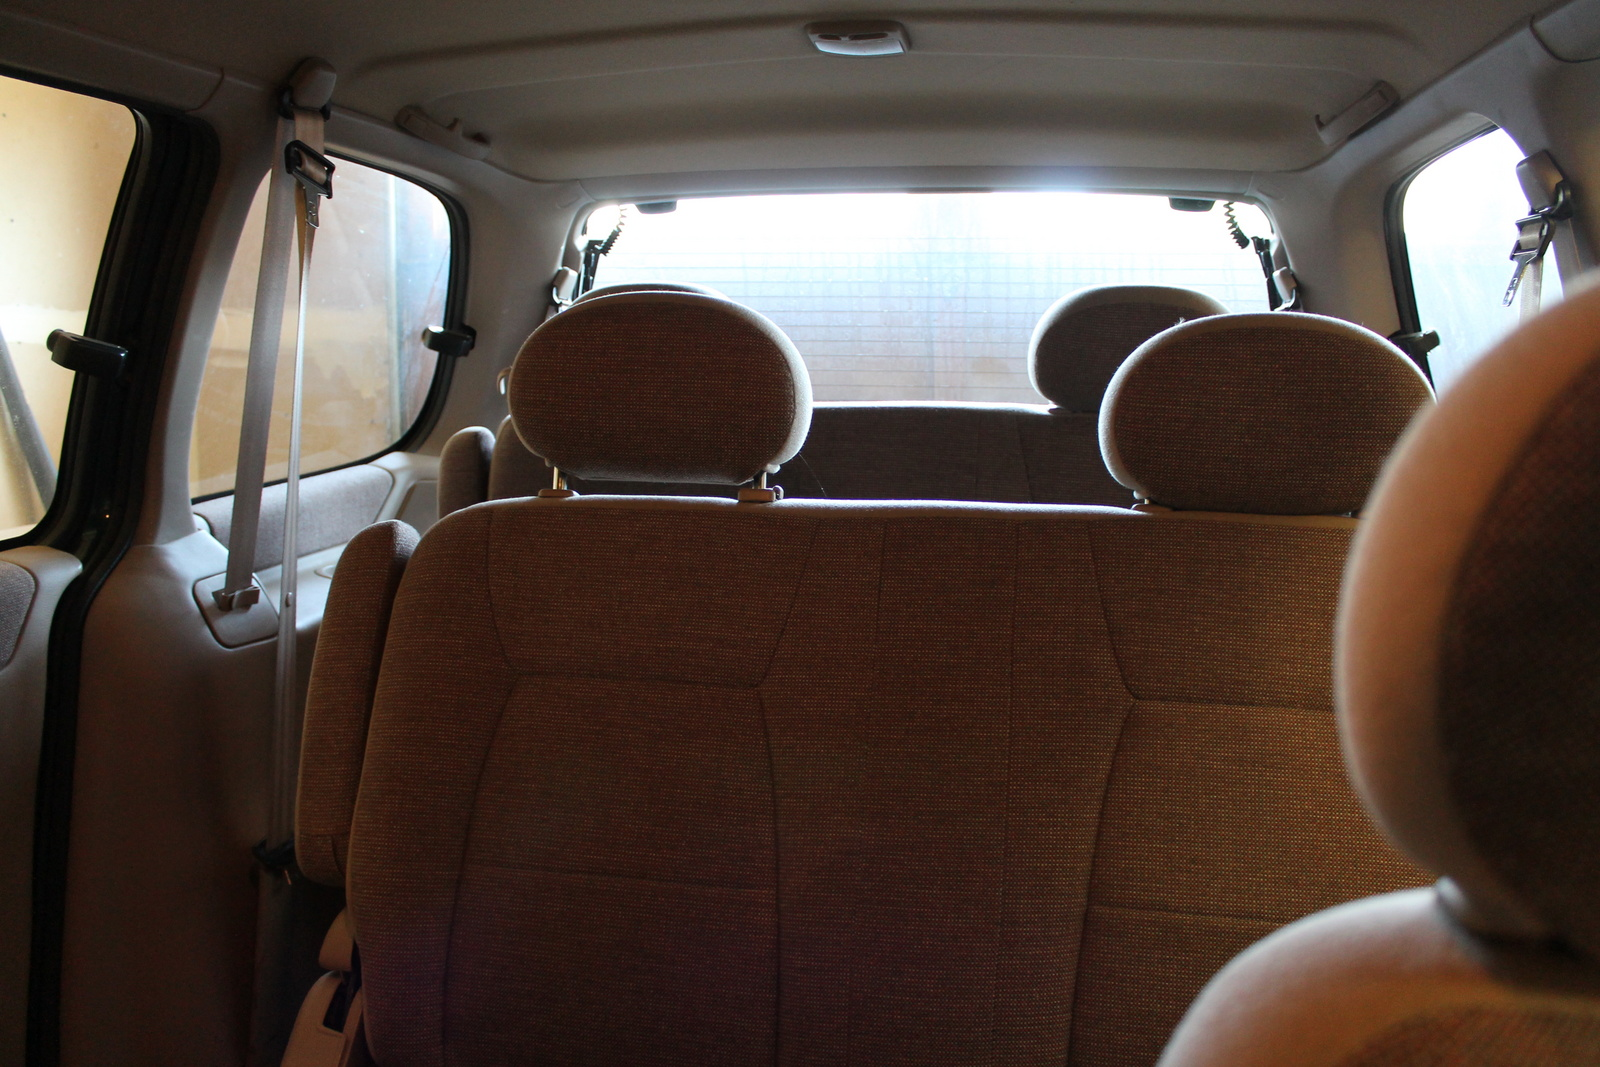 Picture of 1995 Mercury Villager 3 Dr GS Passenger Van, interior